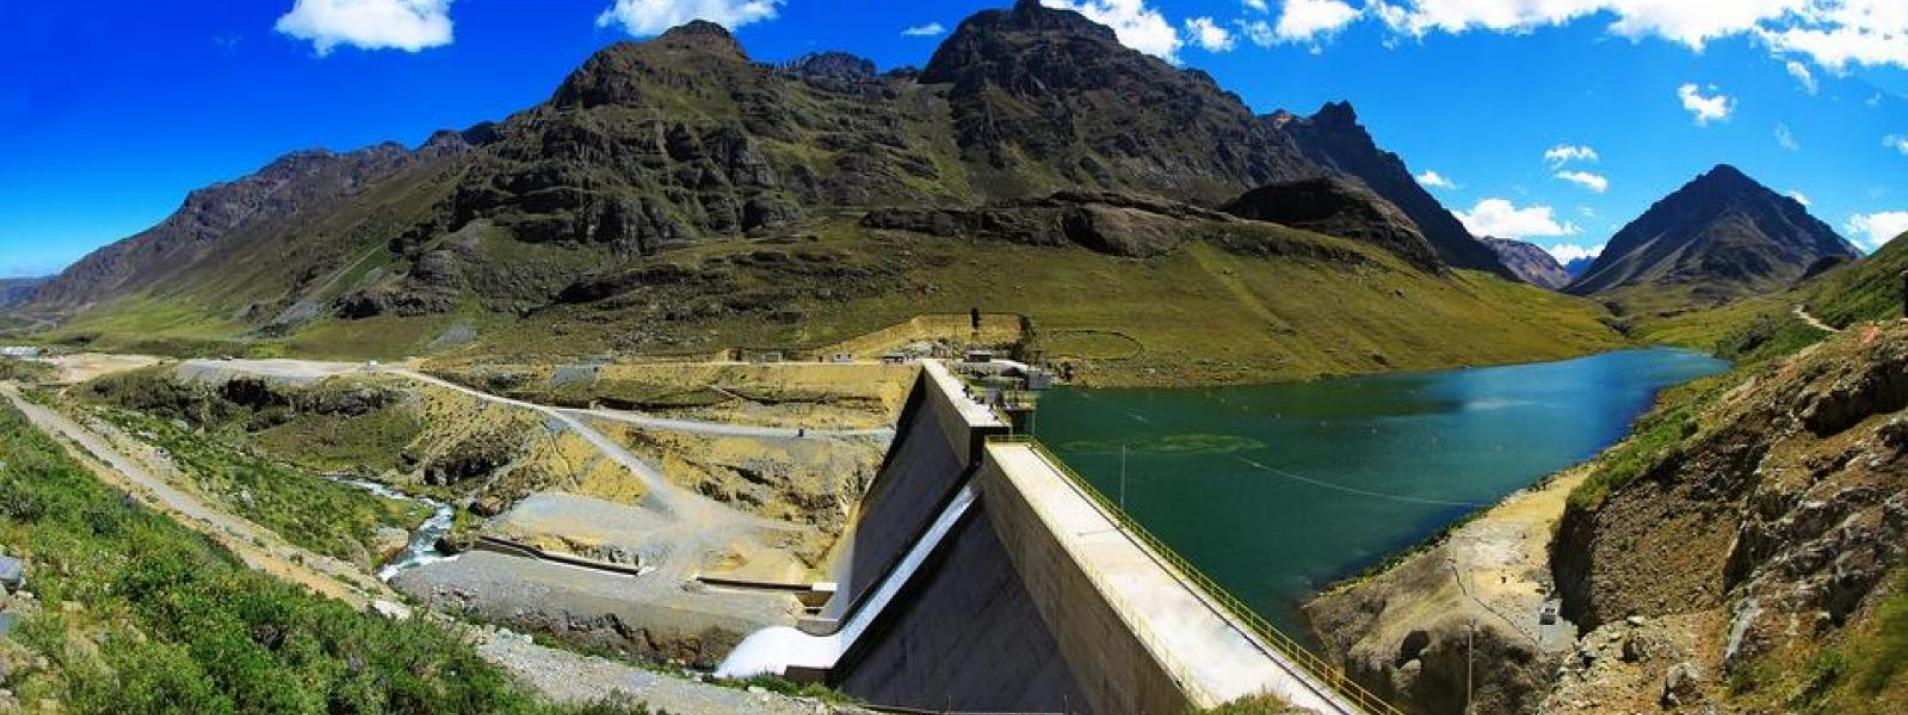 Large-scale hydroelectric dams on Andean rivers disrupt river connectivity to the Amazon.